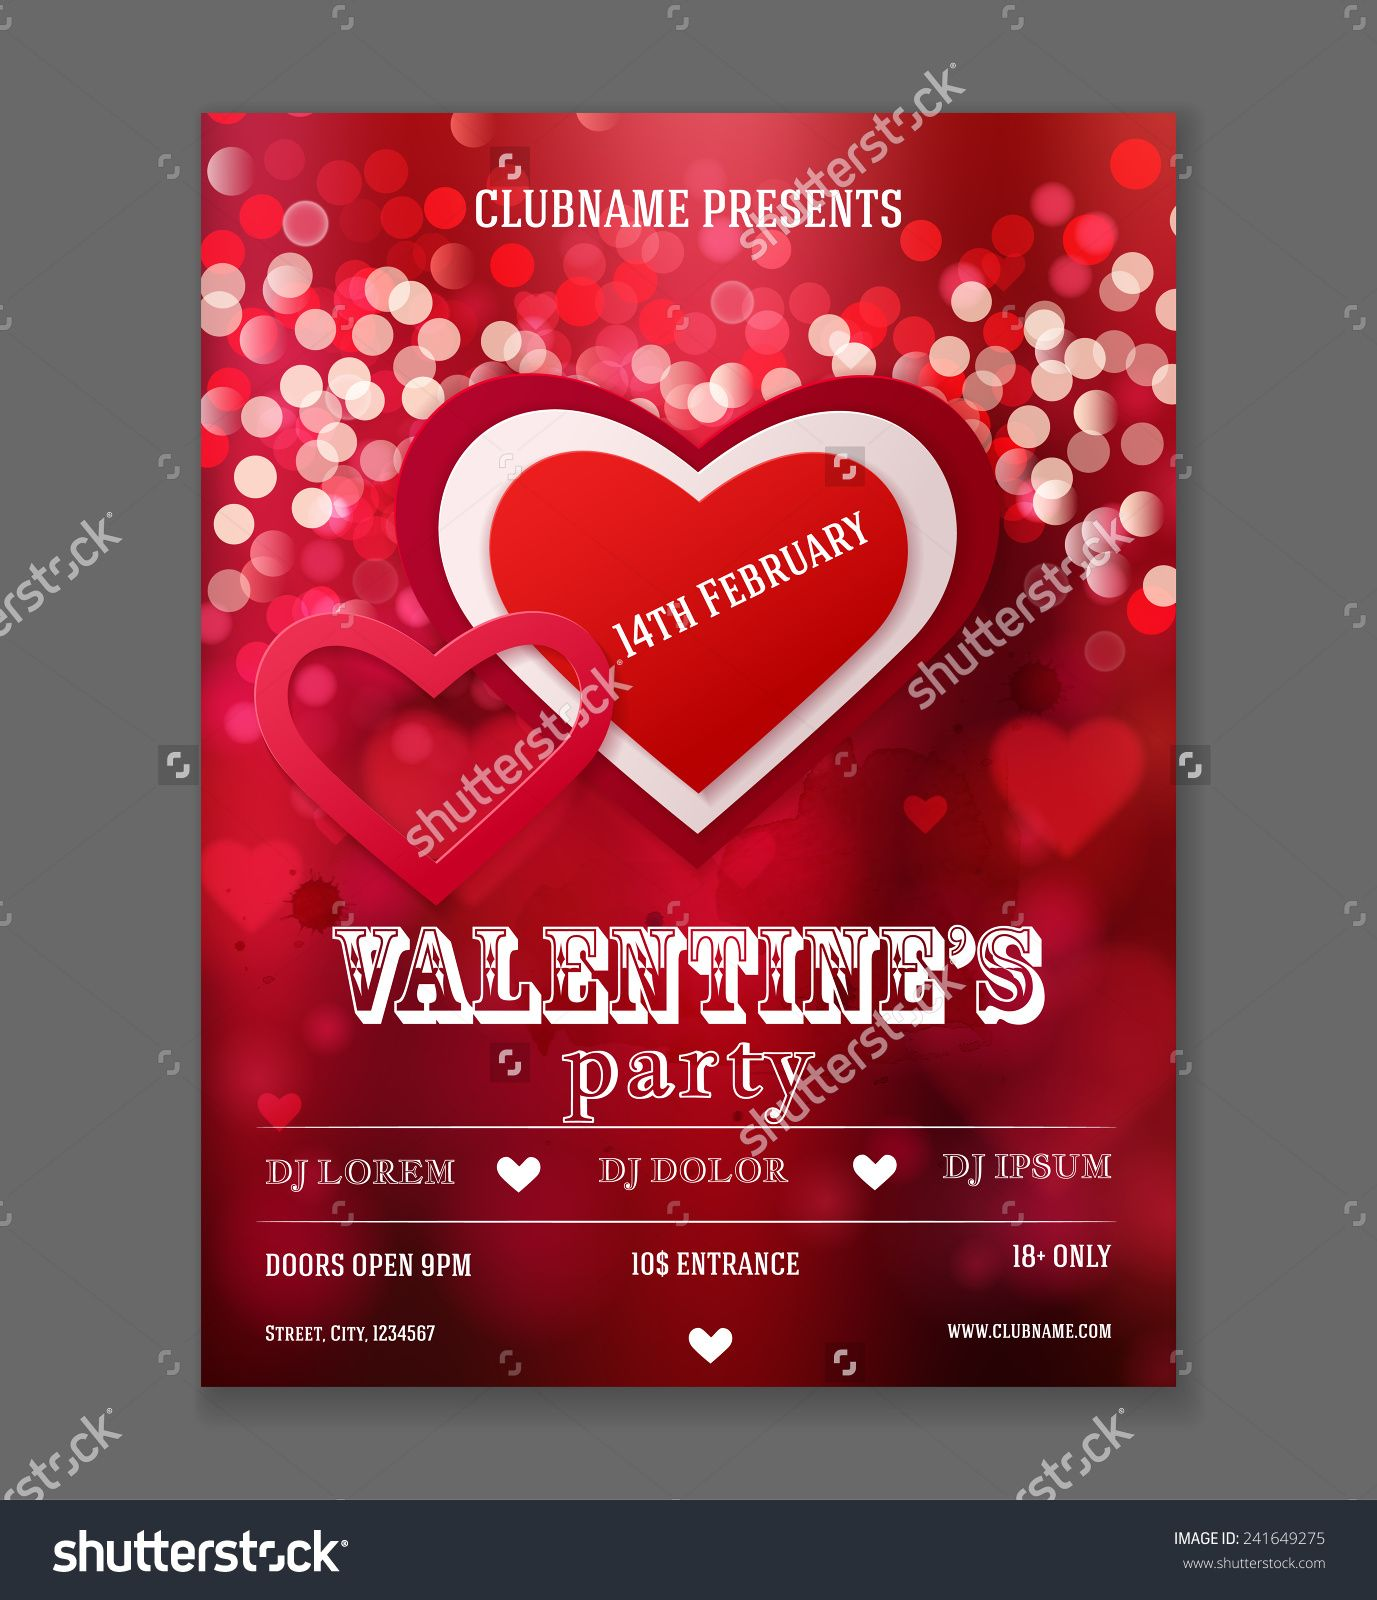 valentines day party flyer design vector template of invitation flyer poster or greeting